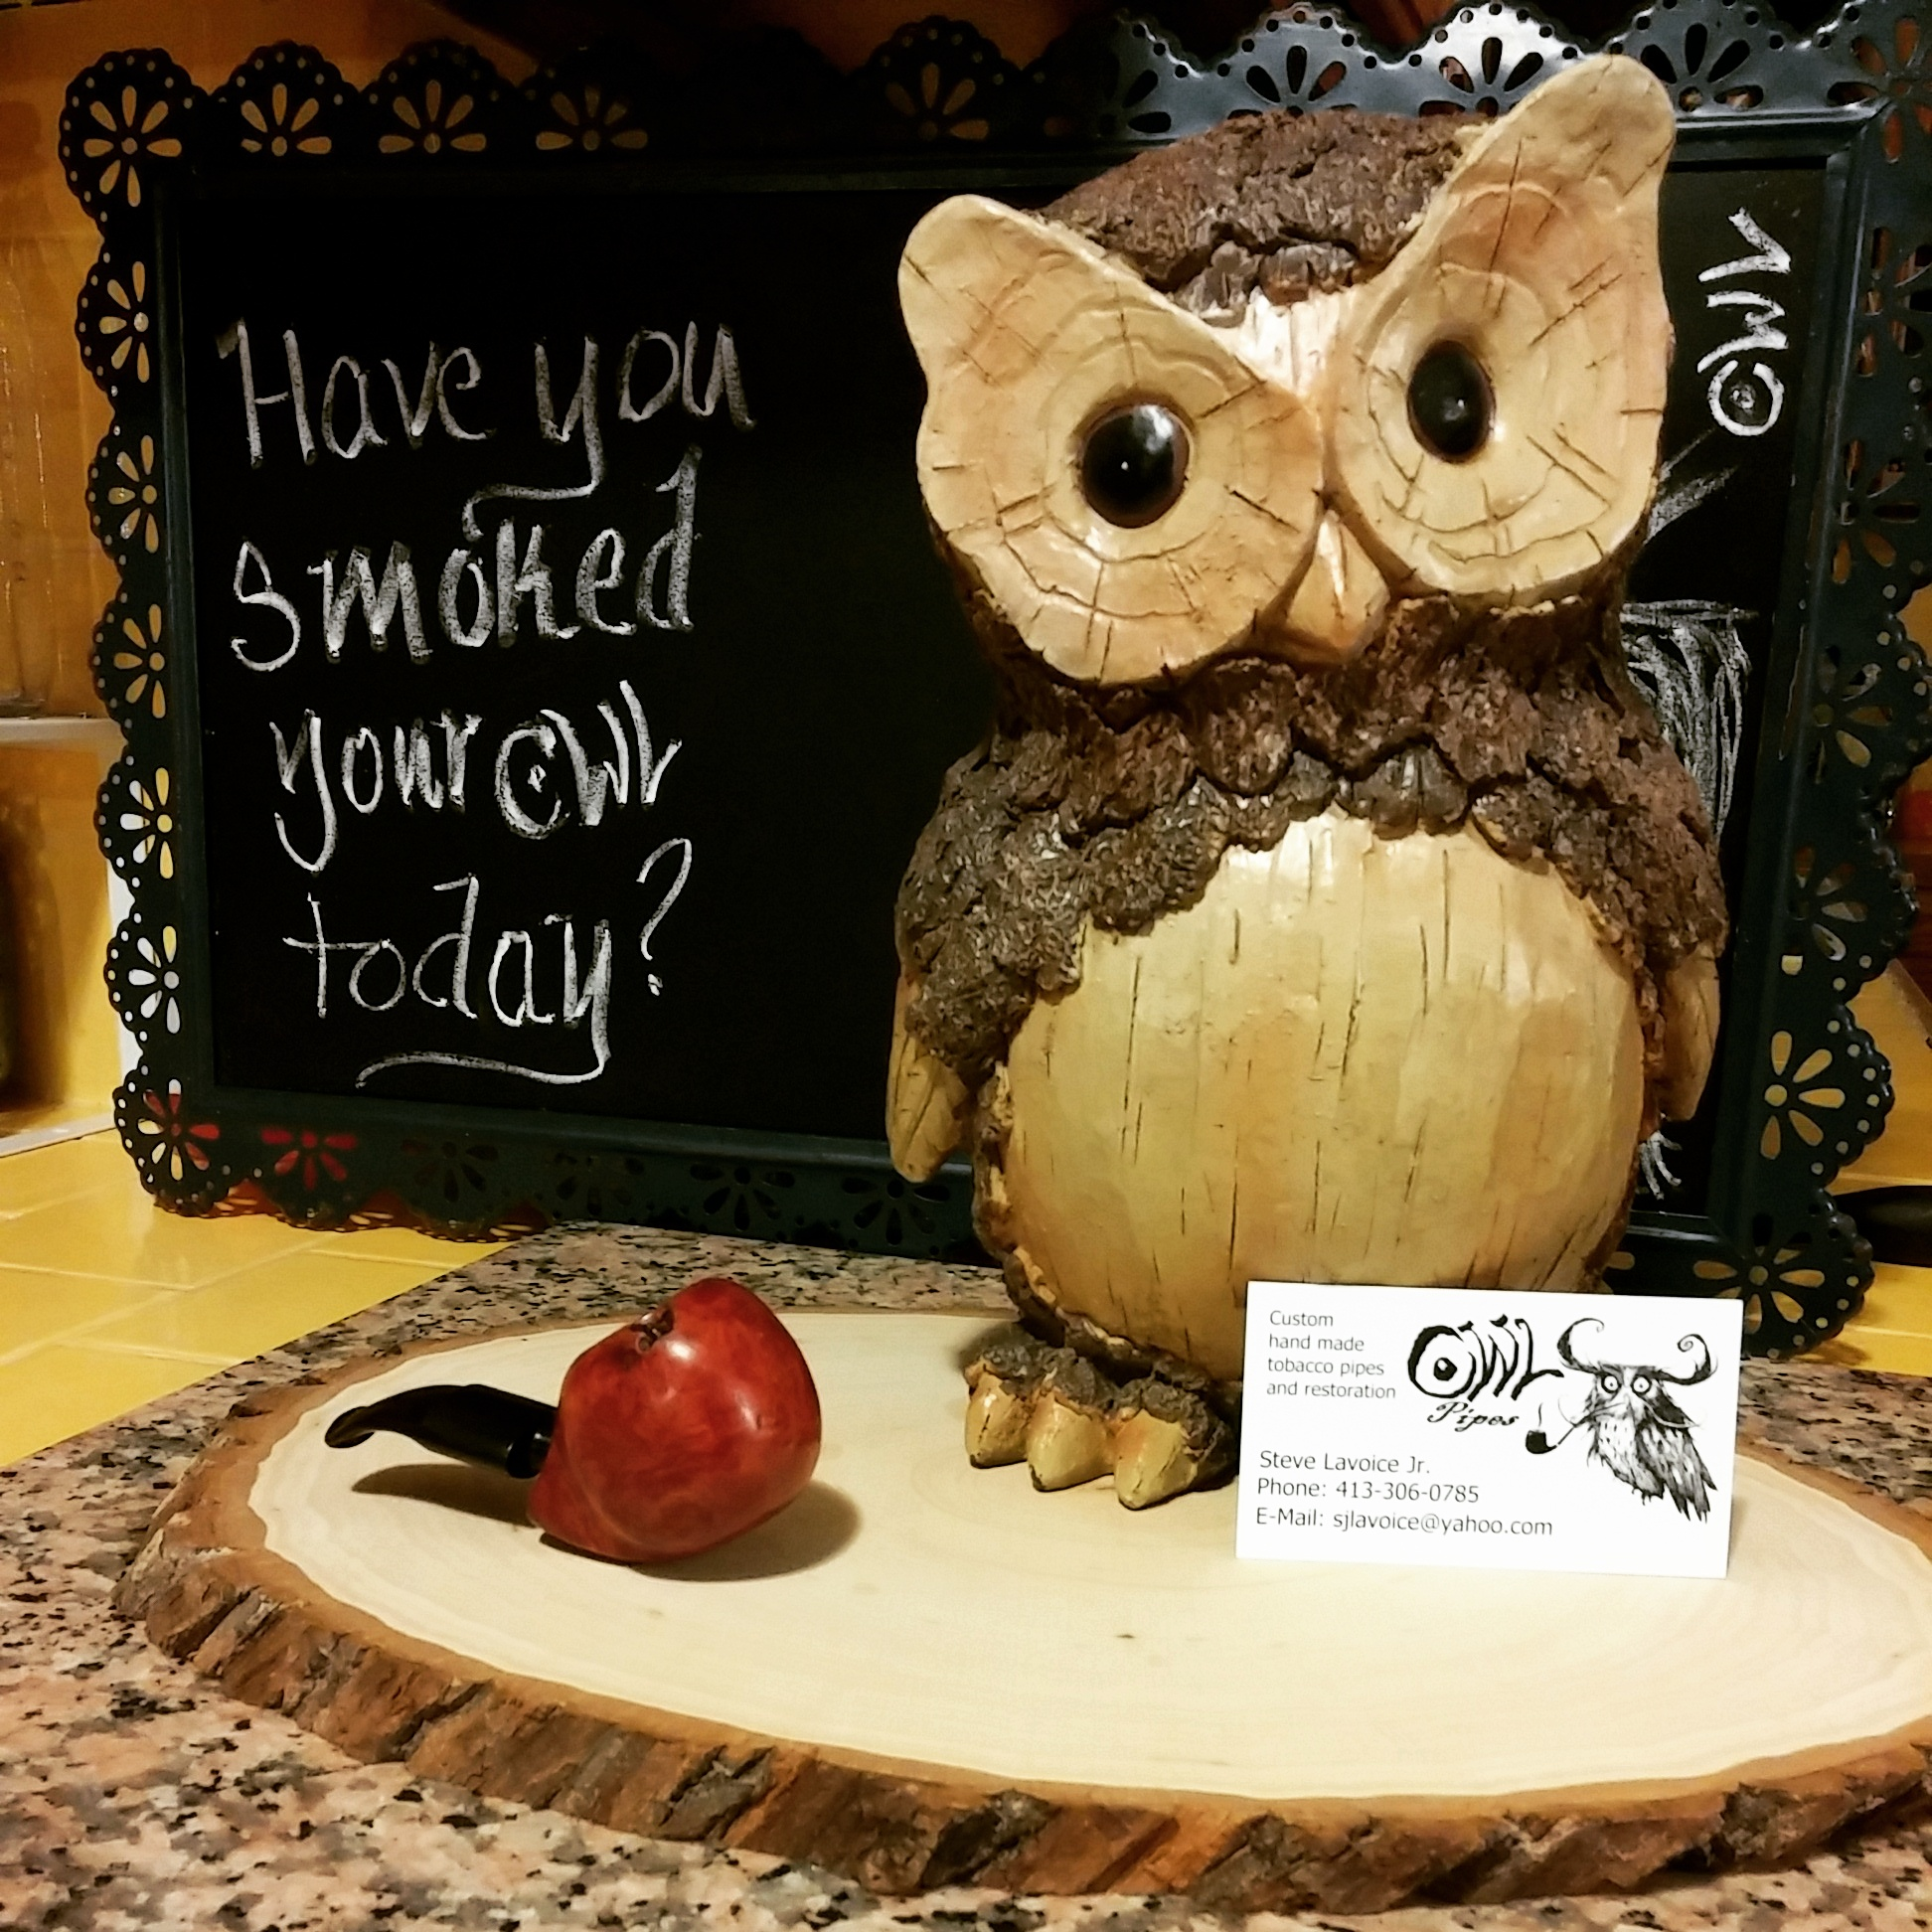 Have you smoked your Owl today?